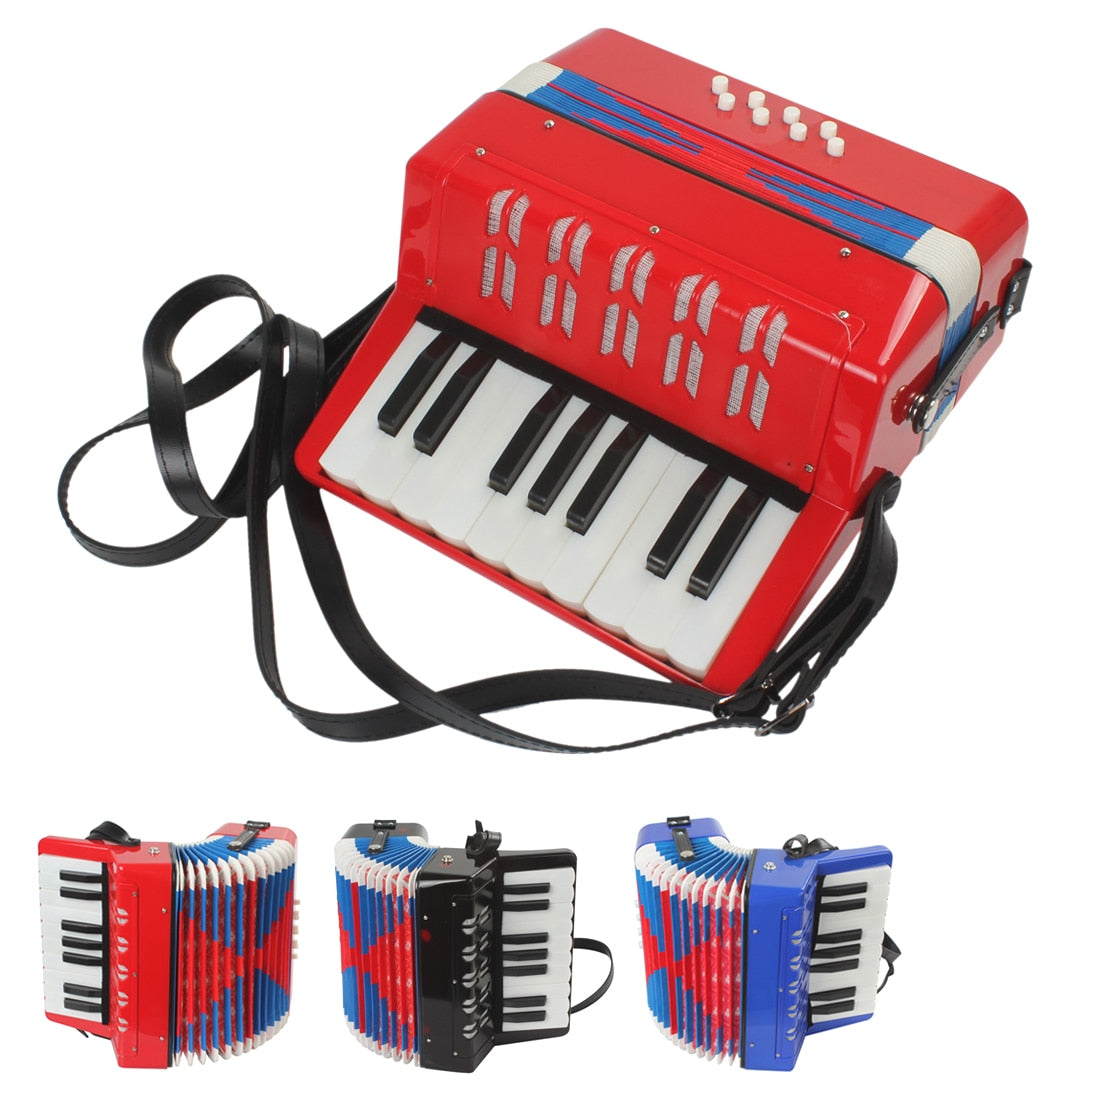 Costbuys  Mini 3 colors option Educational Musical Instrument 17-Key 8 Bass Toy Accordion for Kids Children - Red